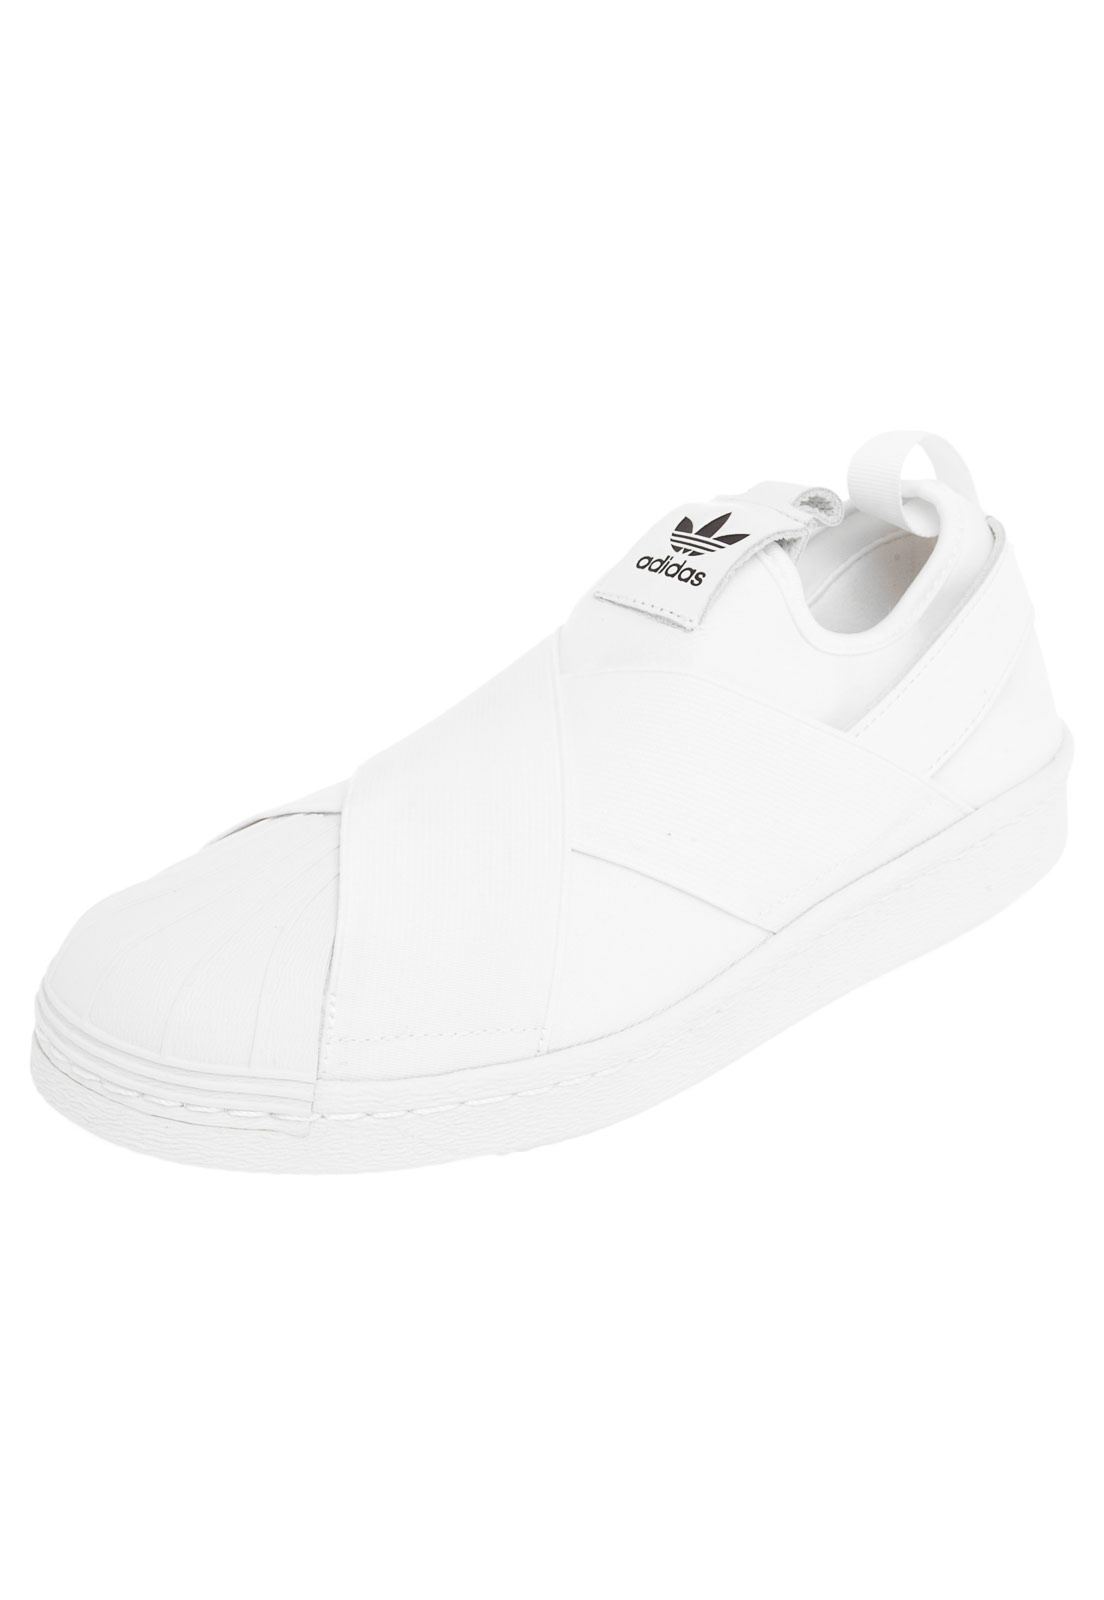 Tênis adidas Originals Superstar Slip on W Branco | Adidas